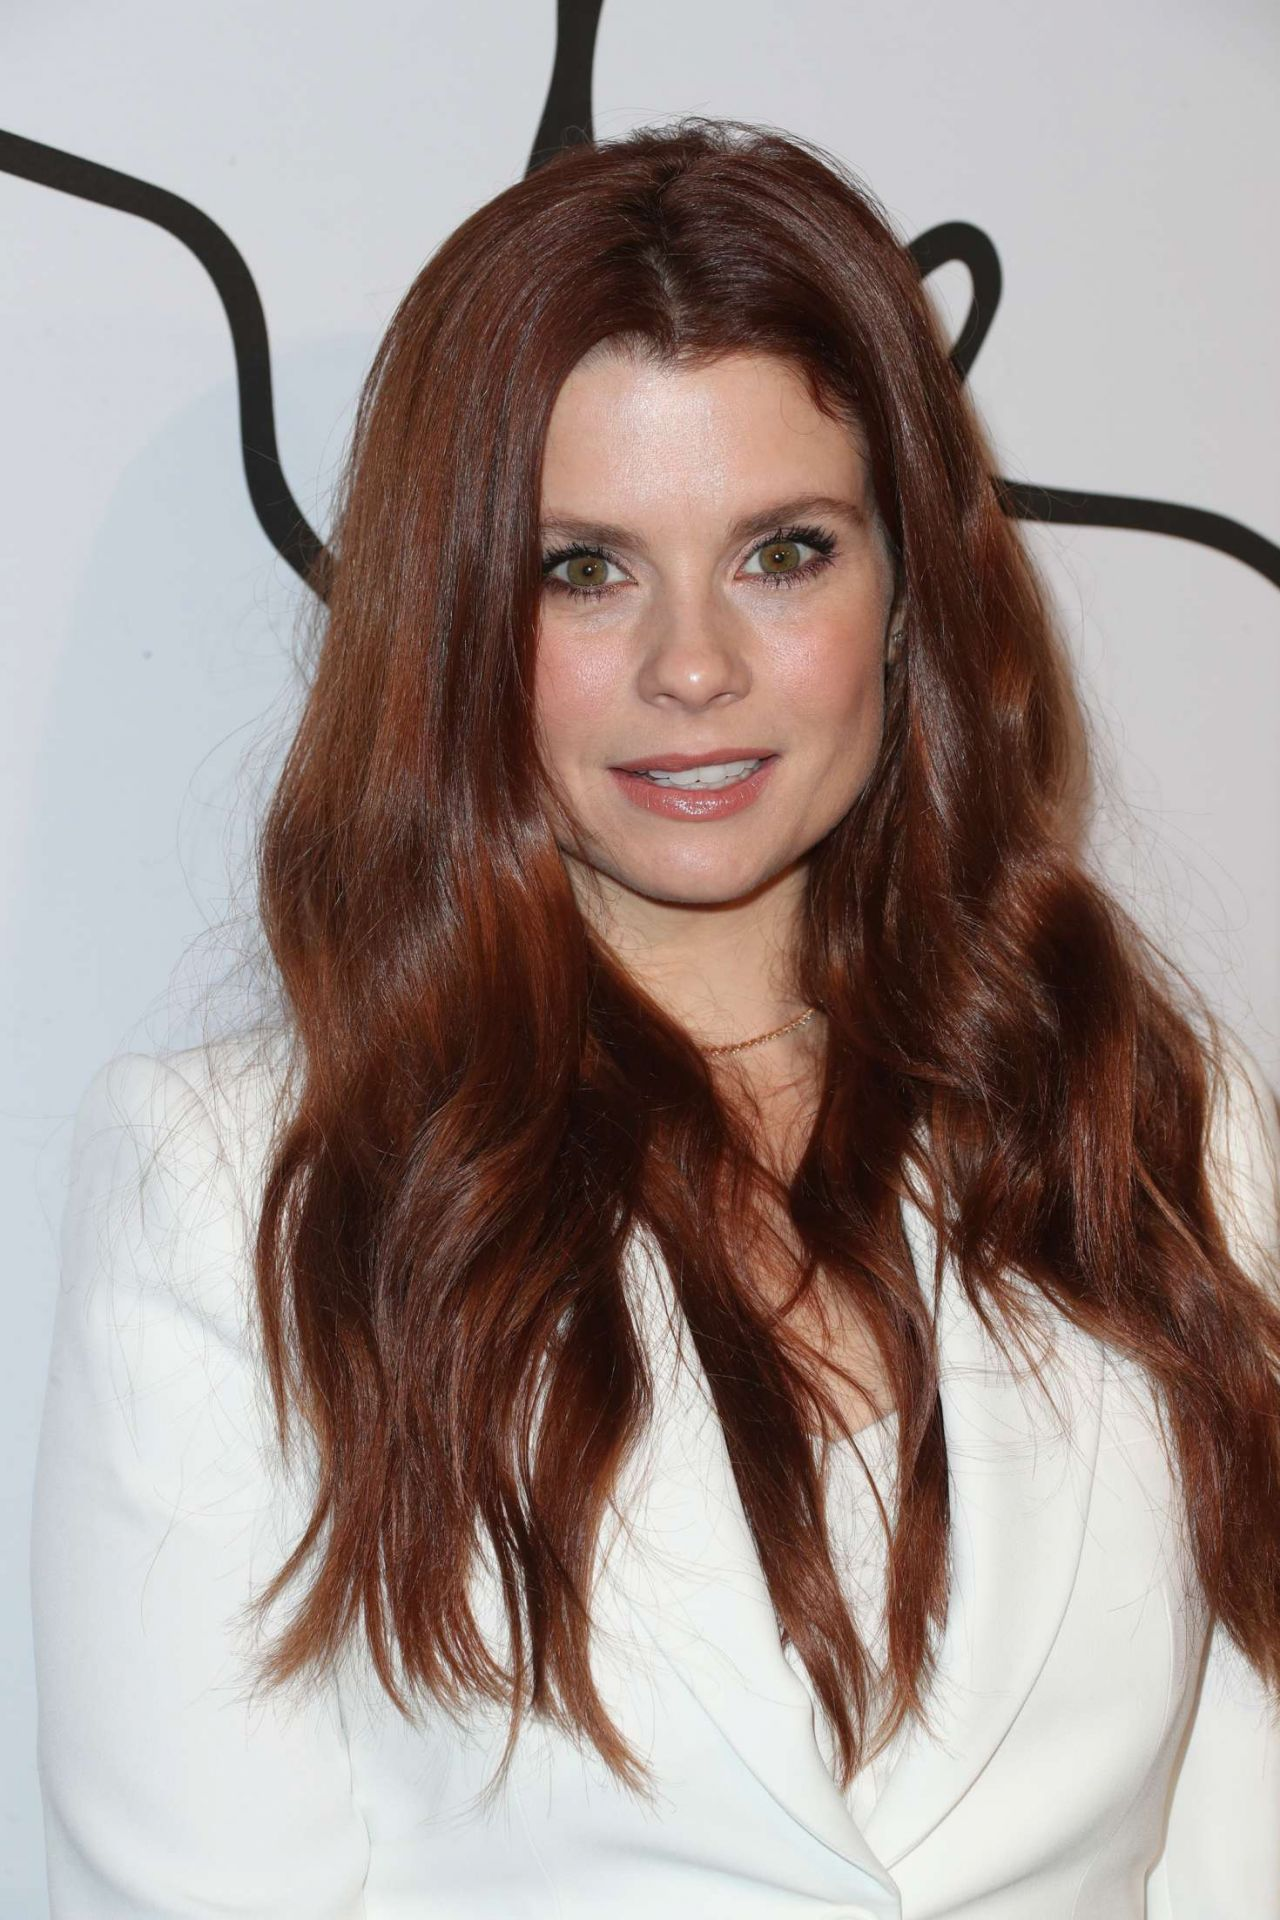 Watch JoAnna Garcia video